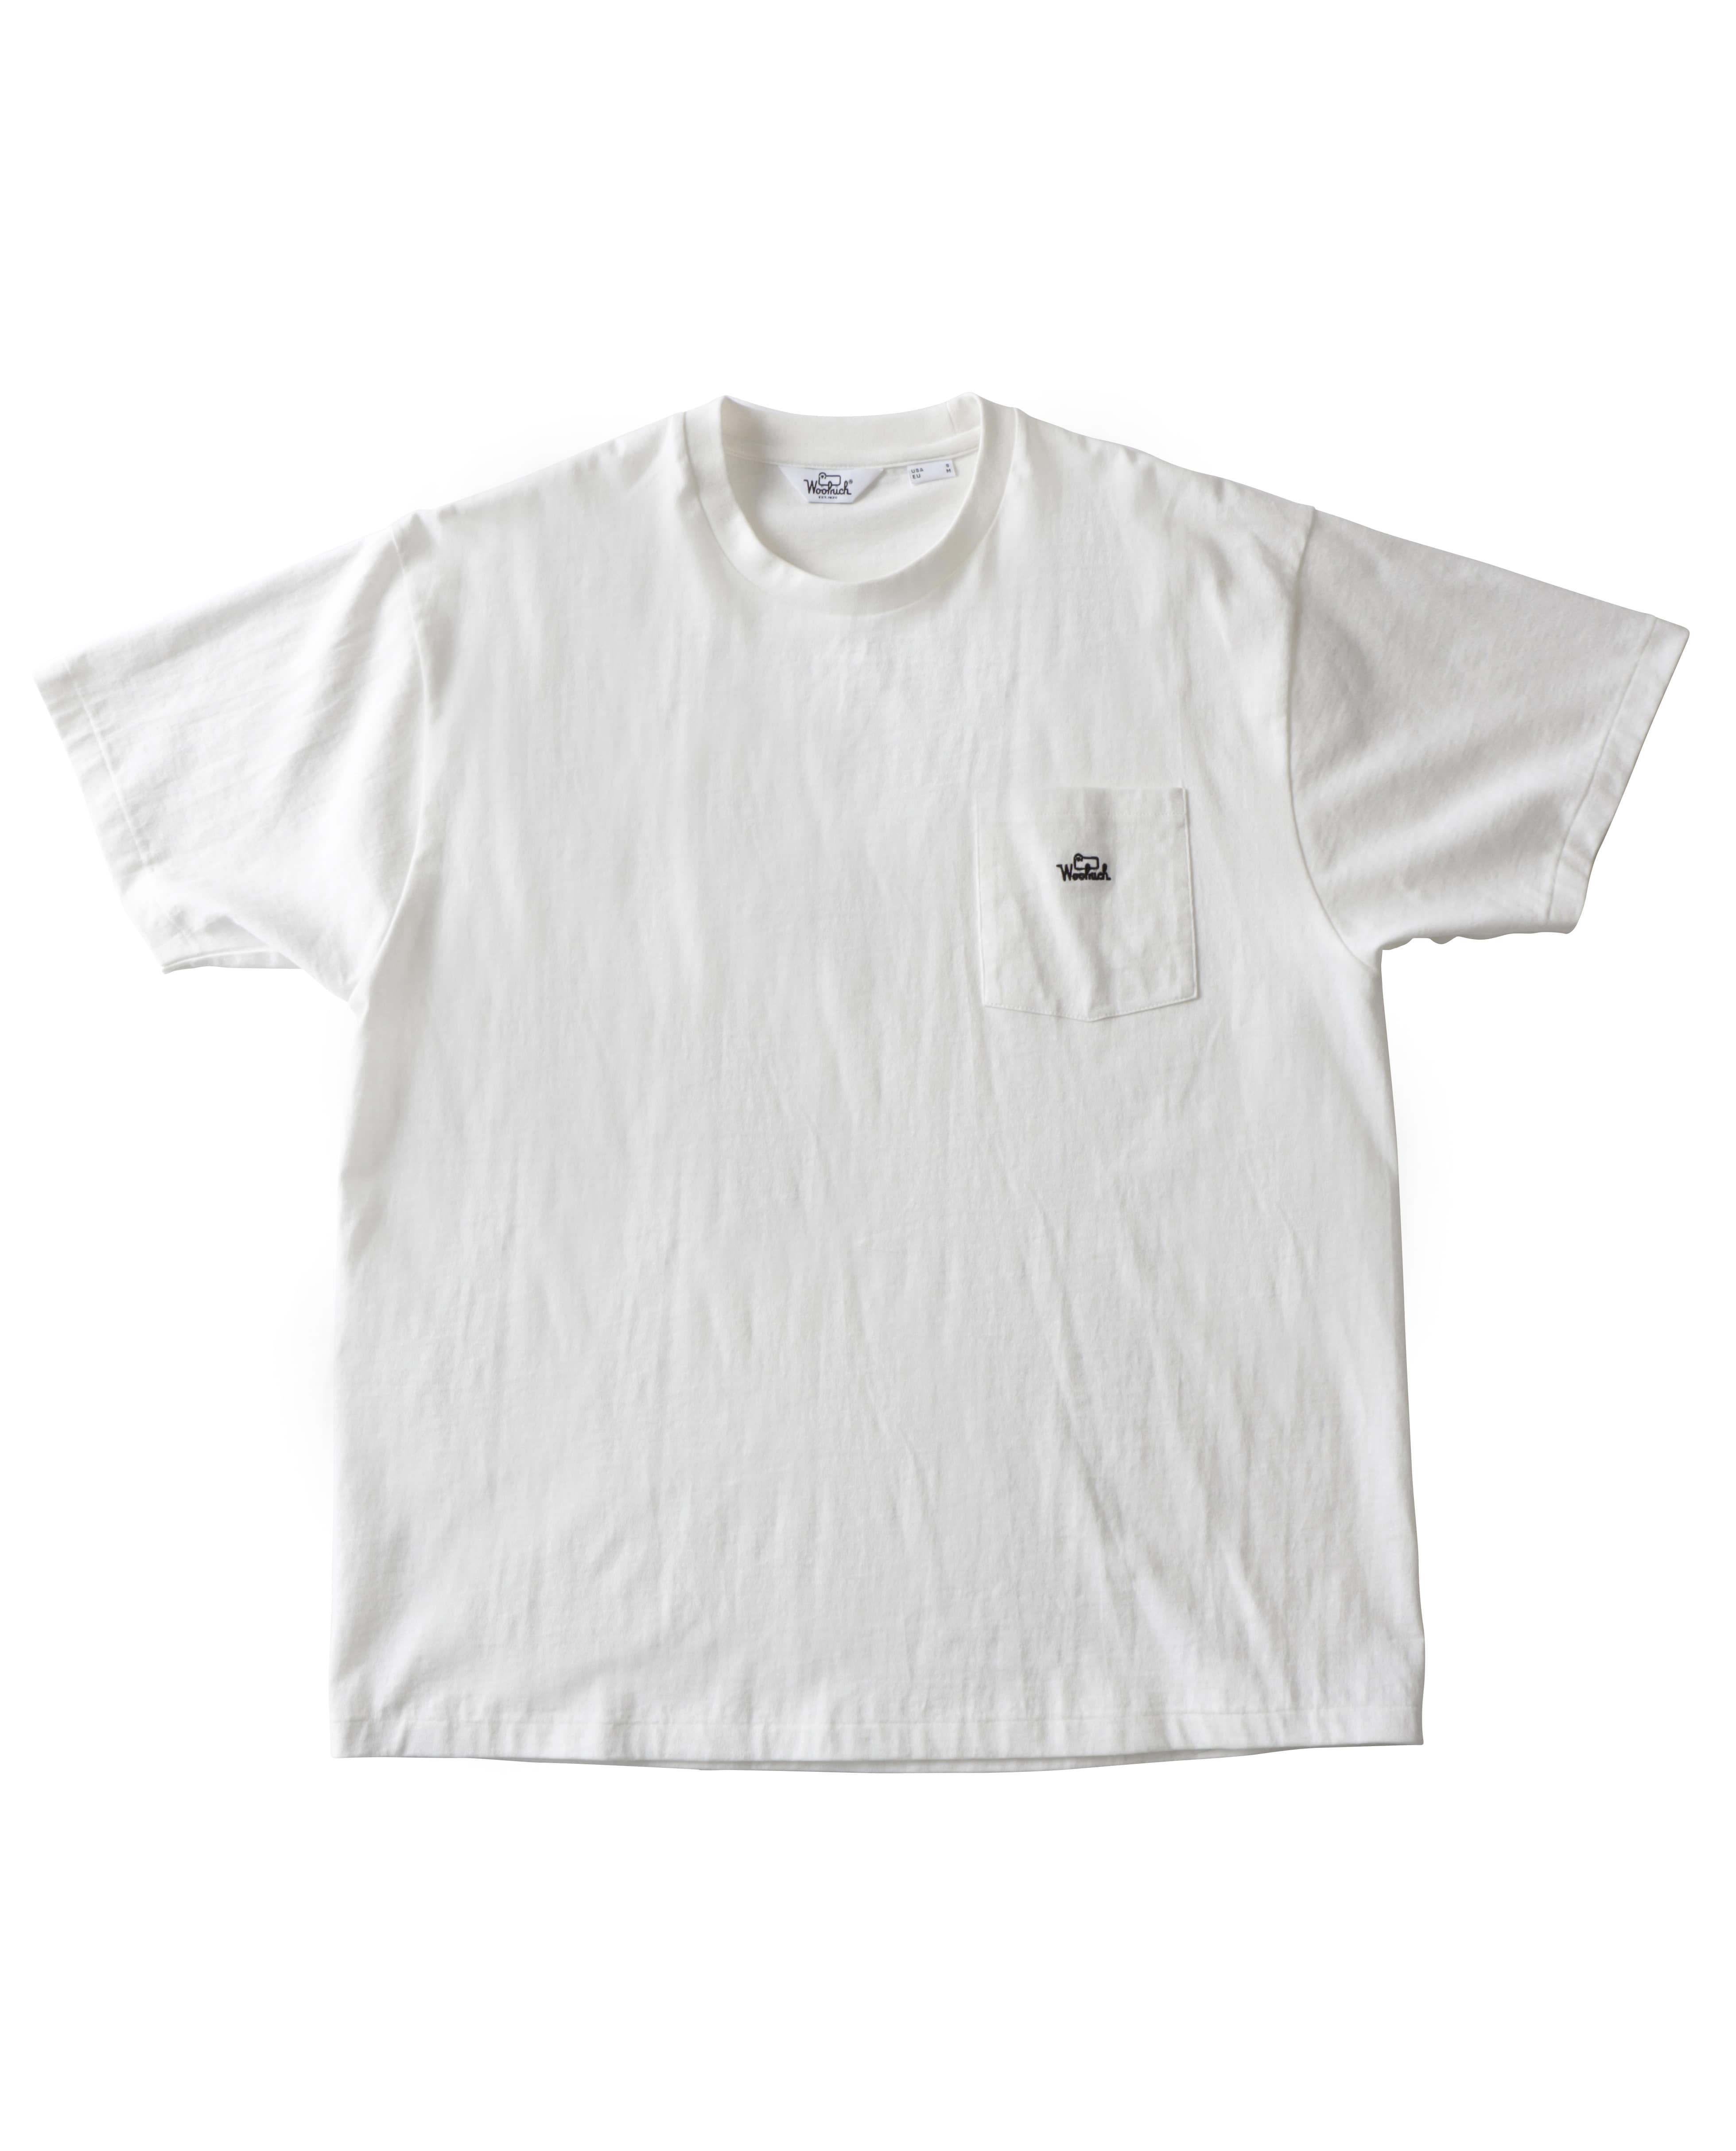 C/N ROUND BODY EMBROIDERY TEE